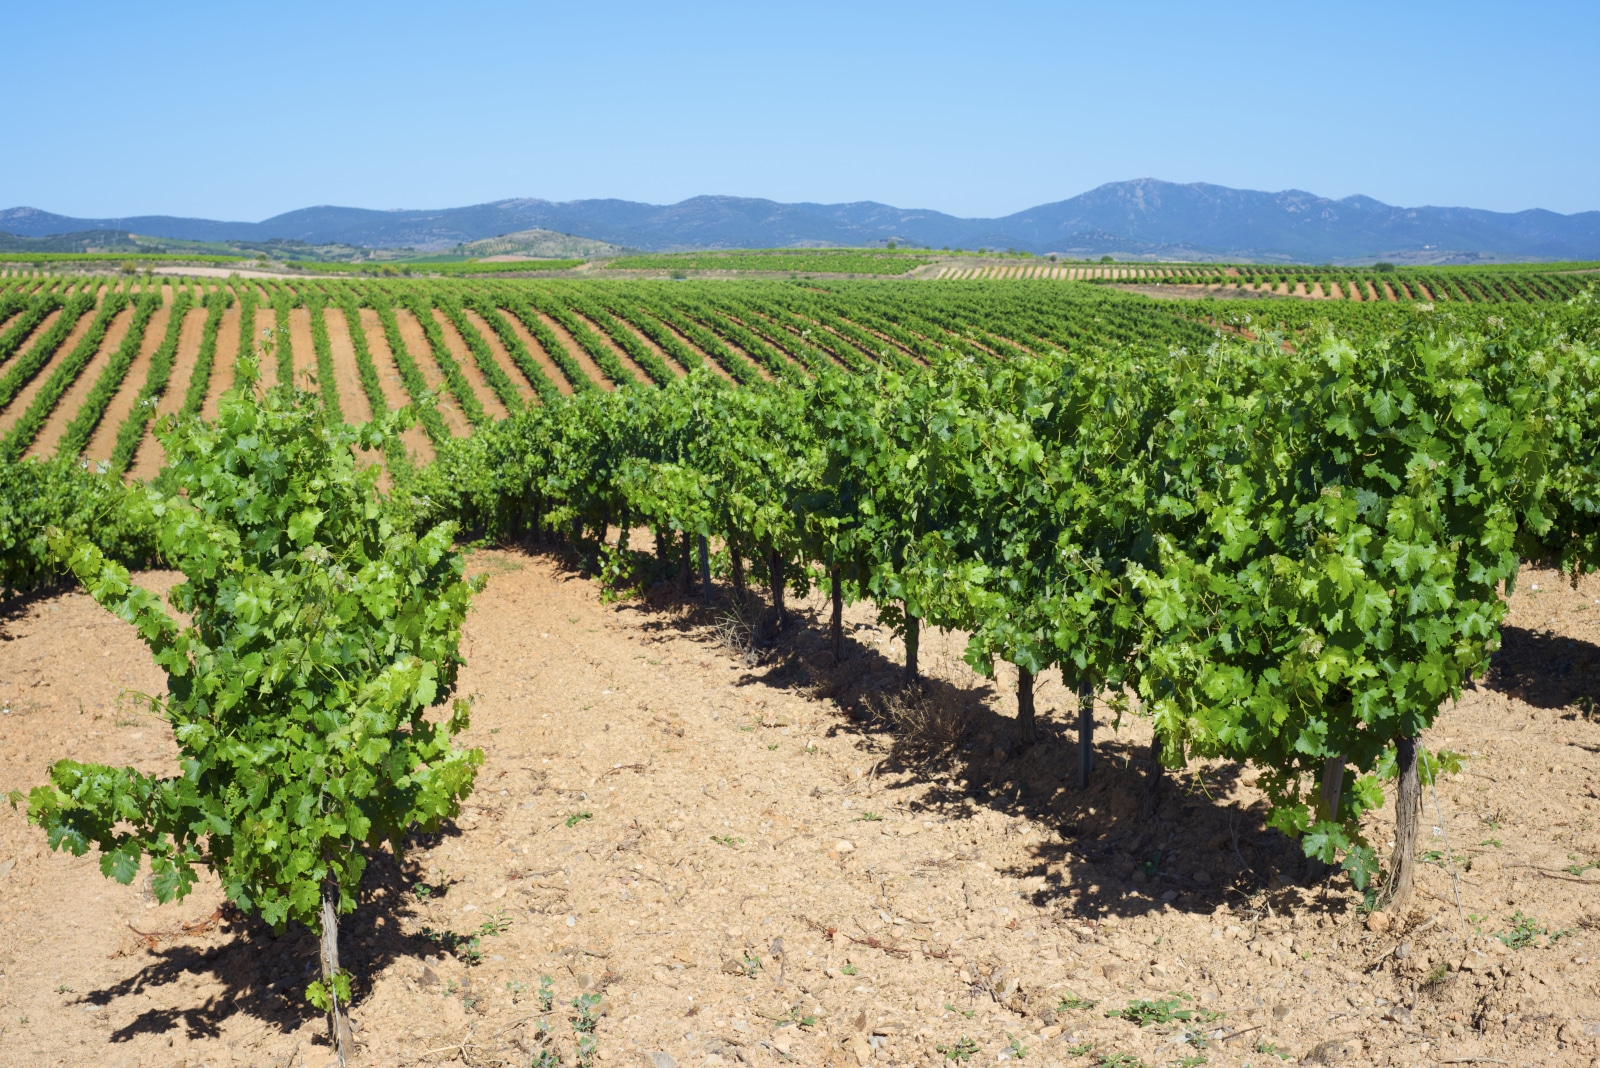 Where Does Carignan Come From